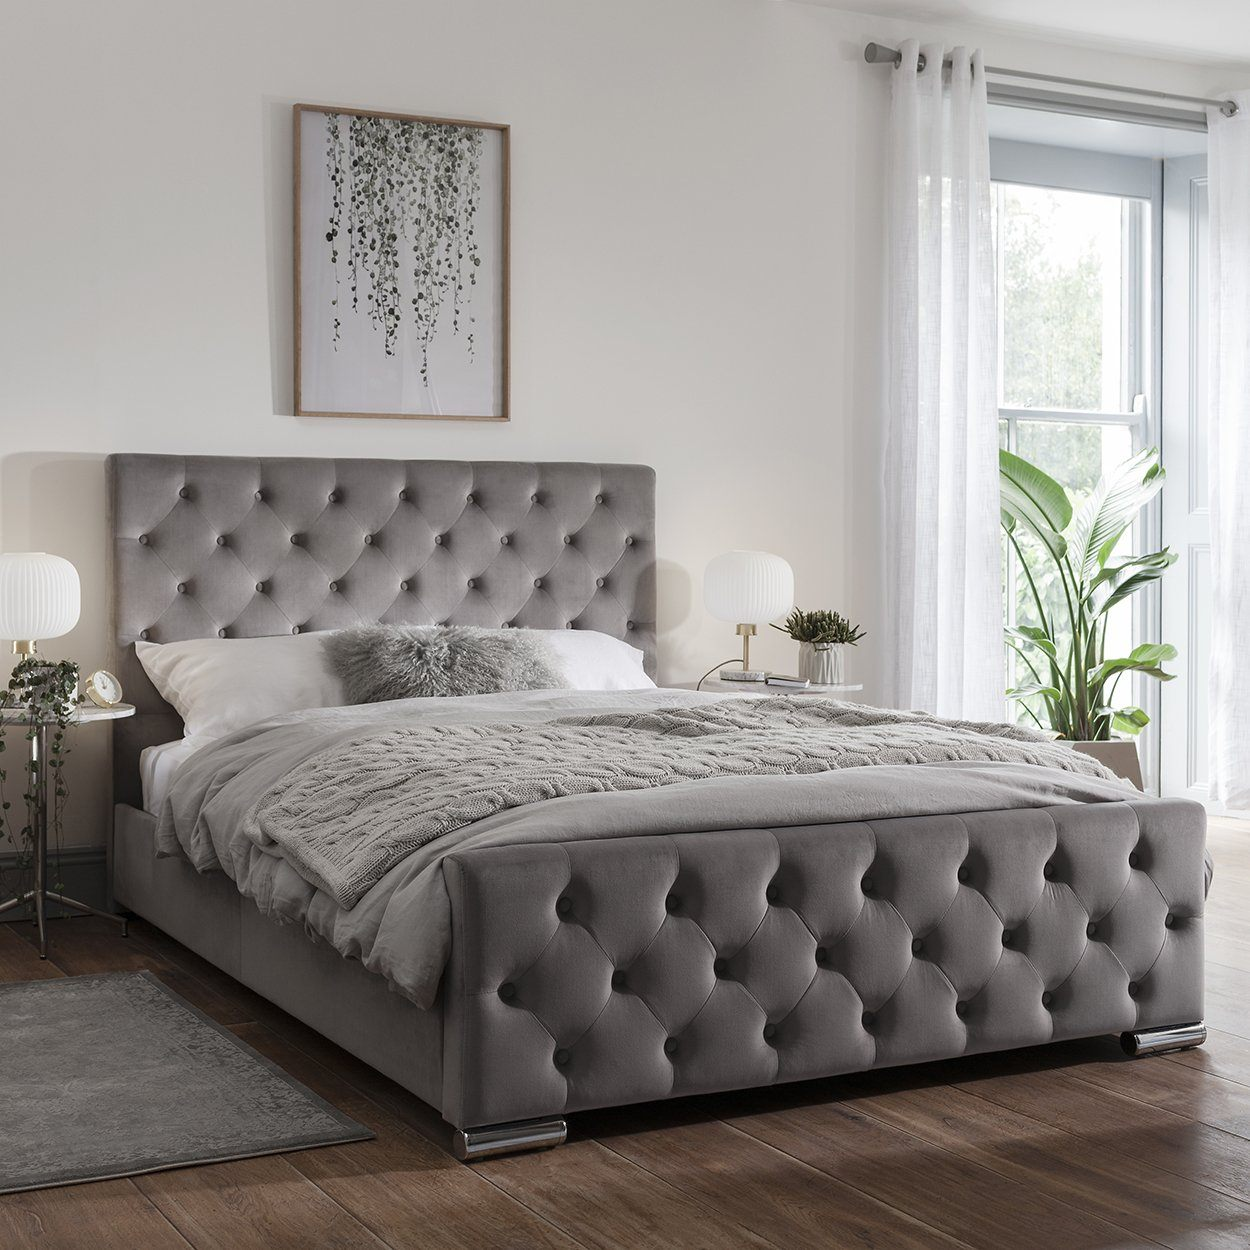 Picture of: Grey Fabric King Size Bed Frame Delivery On Or Before 18 December Laura James